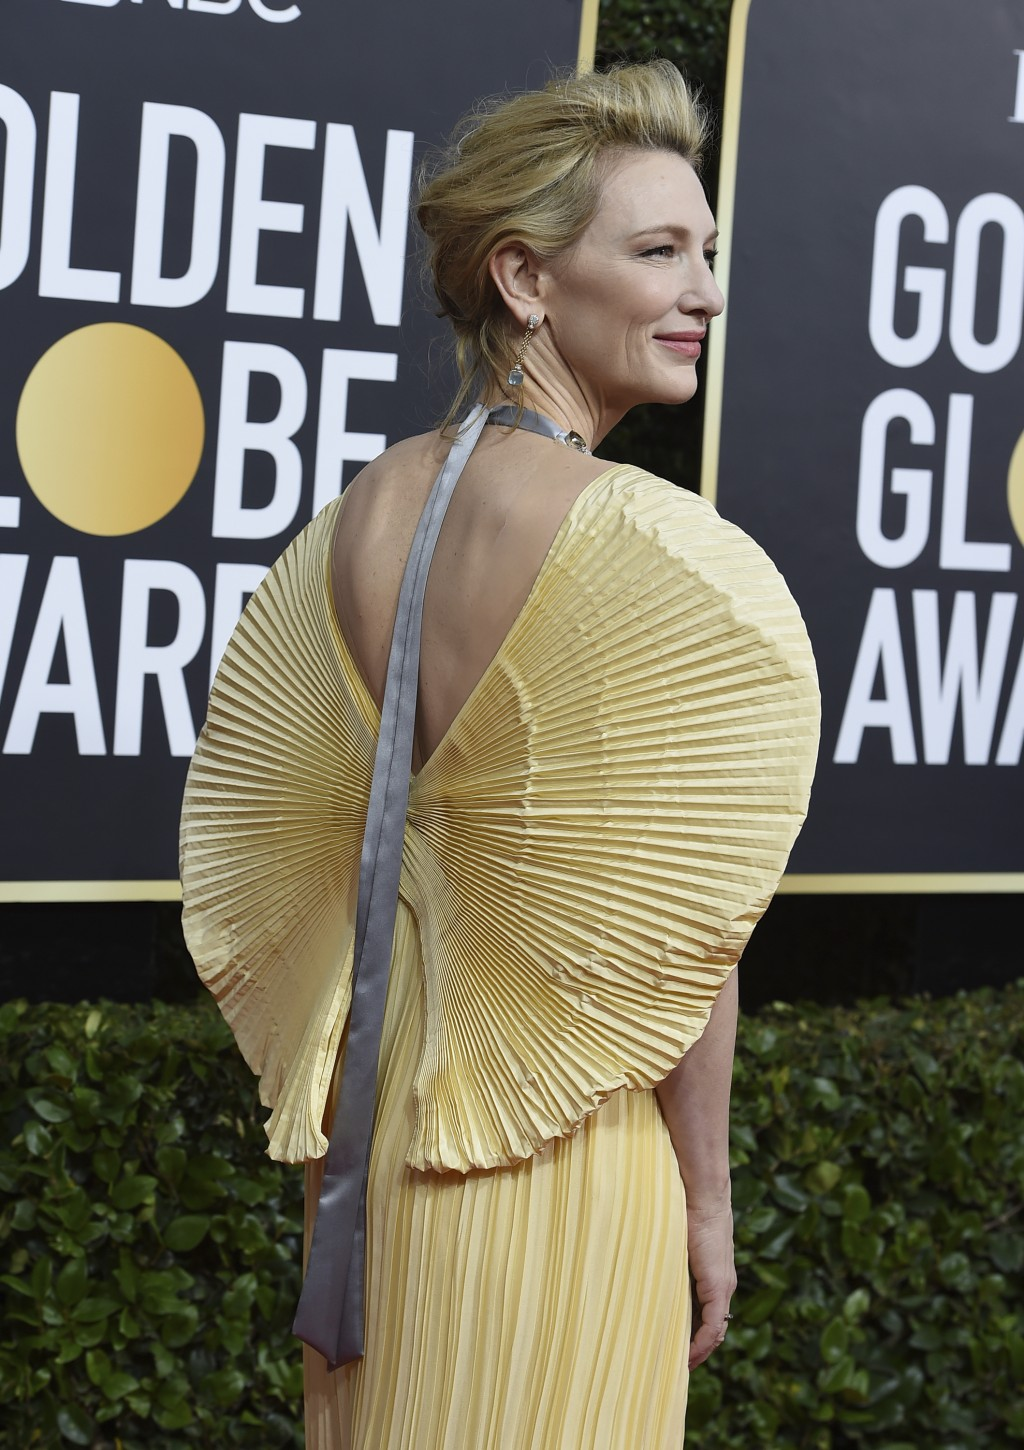 Cate Blanchett arrives at the 77th annual Golden Globe Awards at the Beverly Hilton Hotel on Sunday, Jan. 5, 2020, in Beverly Hills, Calif. (Photo by ...